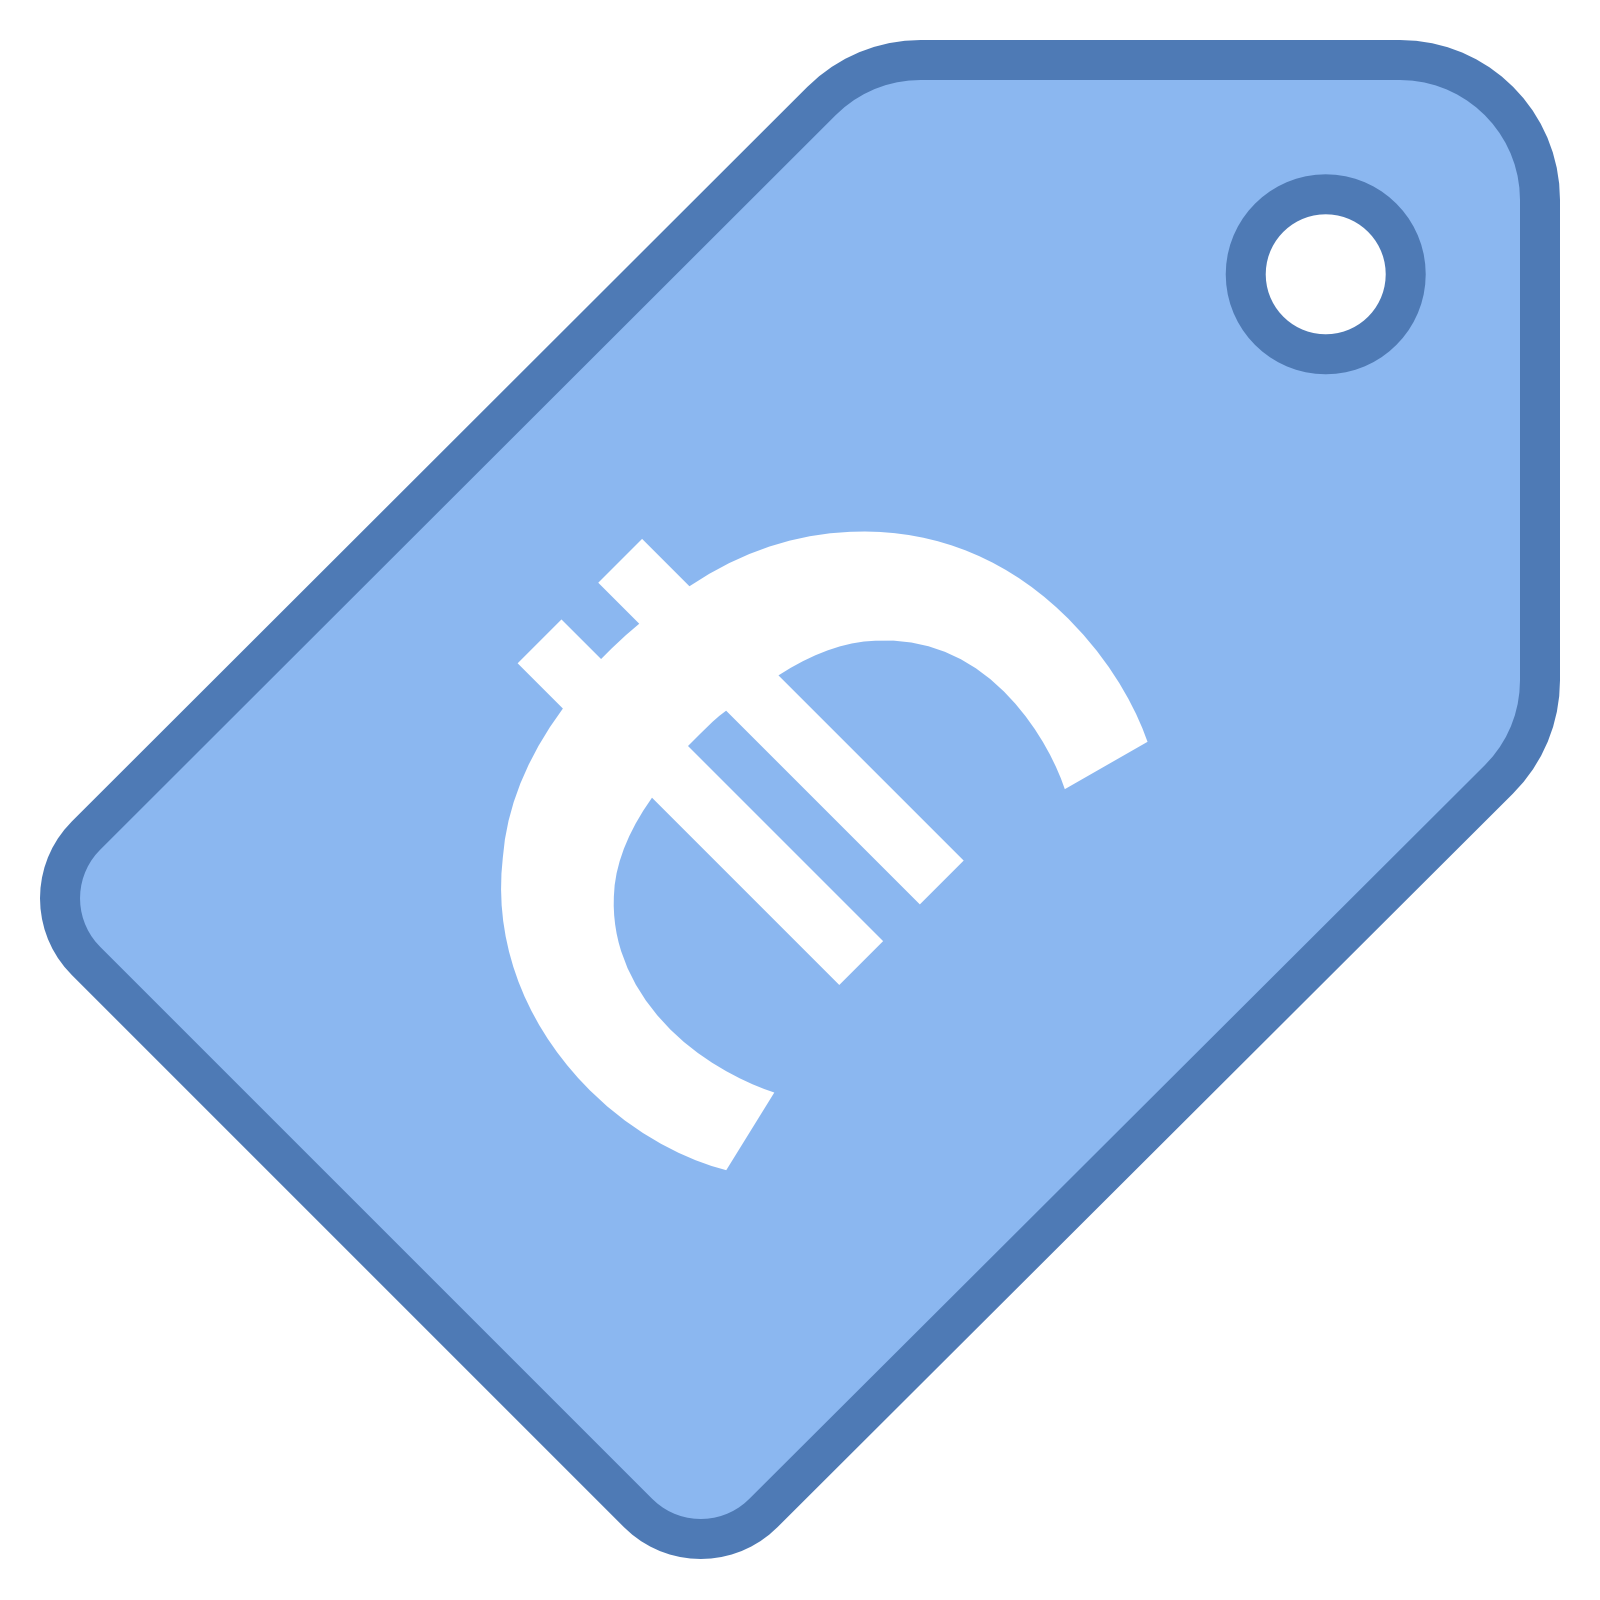 Blue clipart price tag For symbol Tag the price